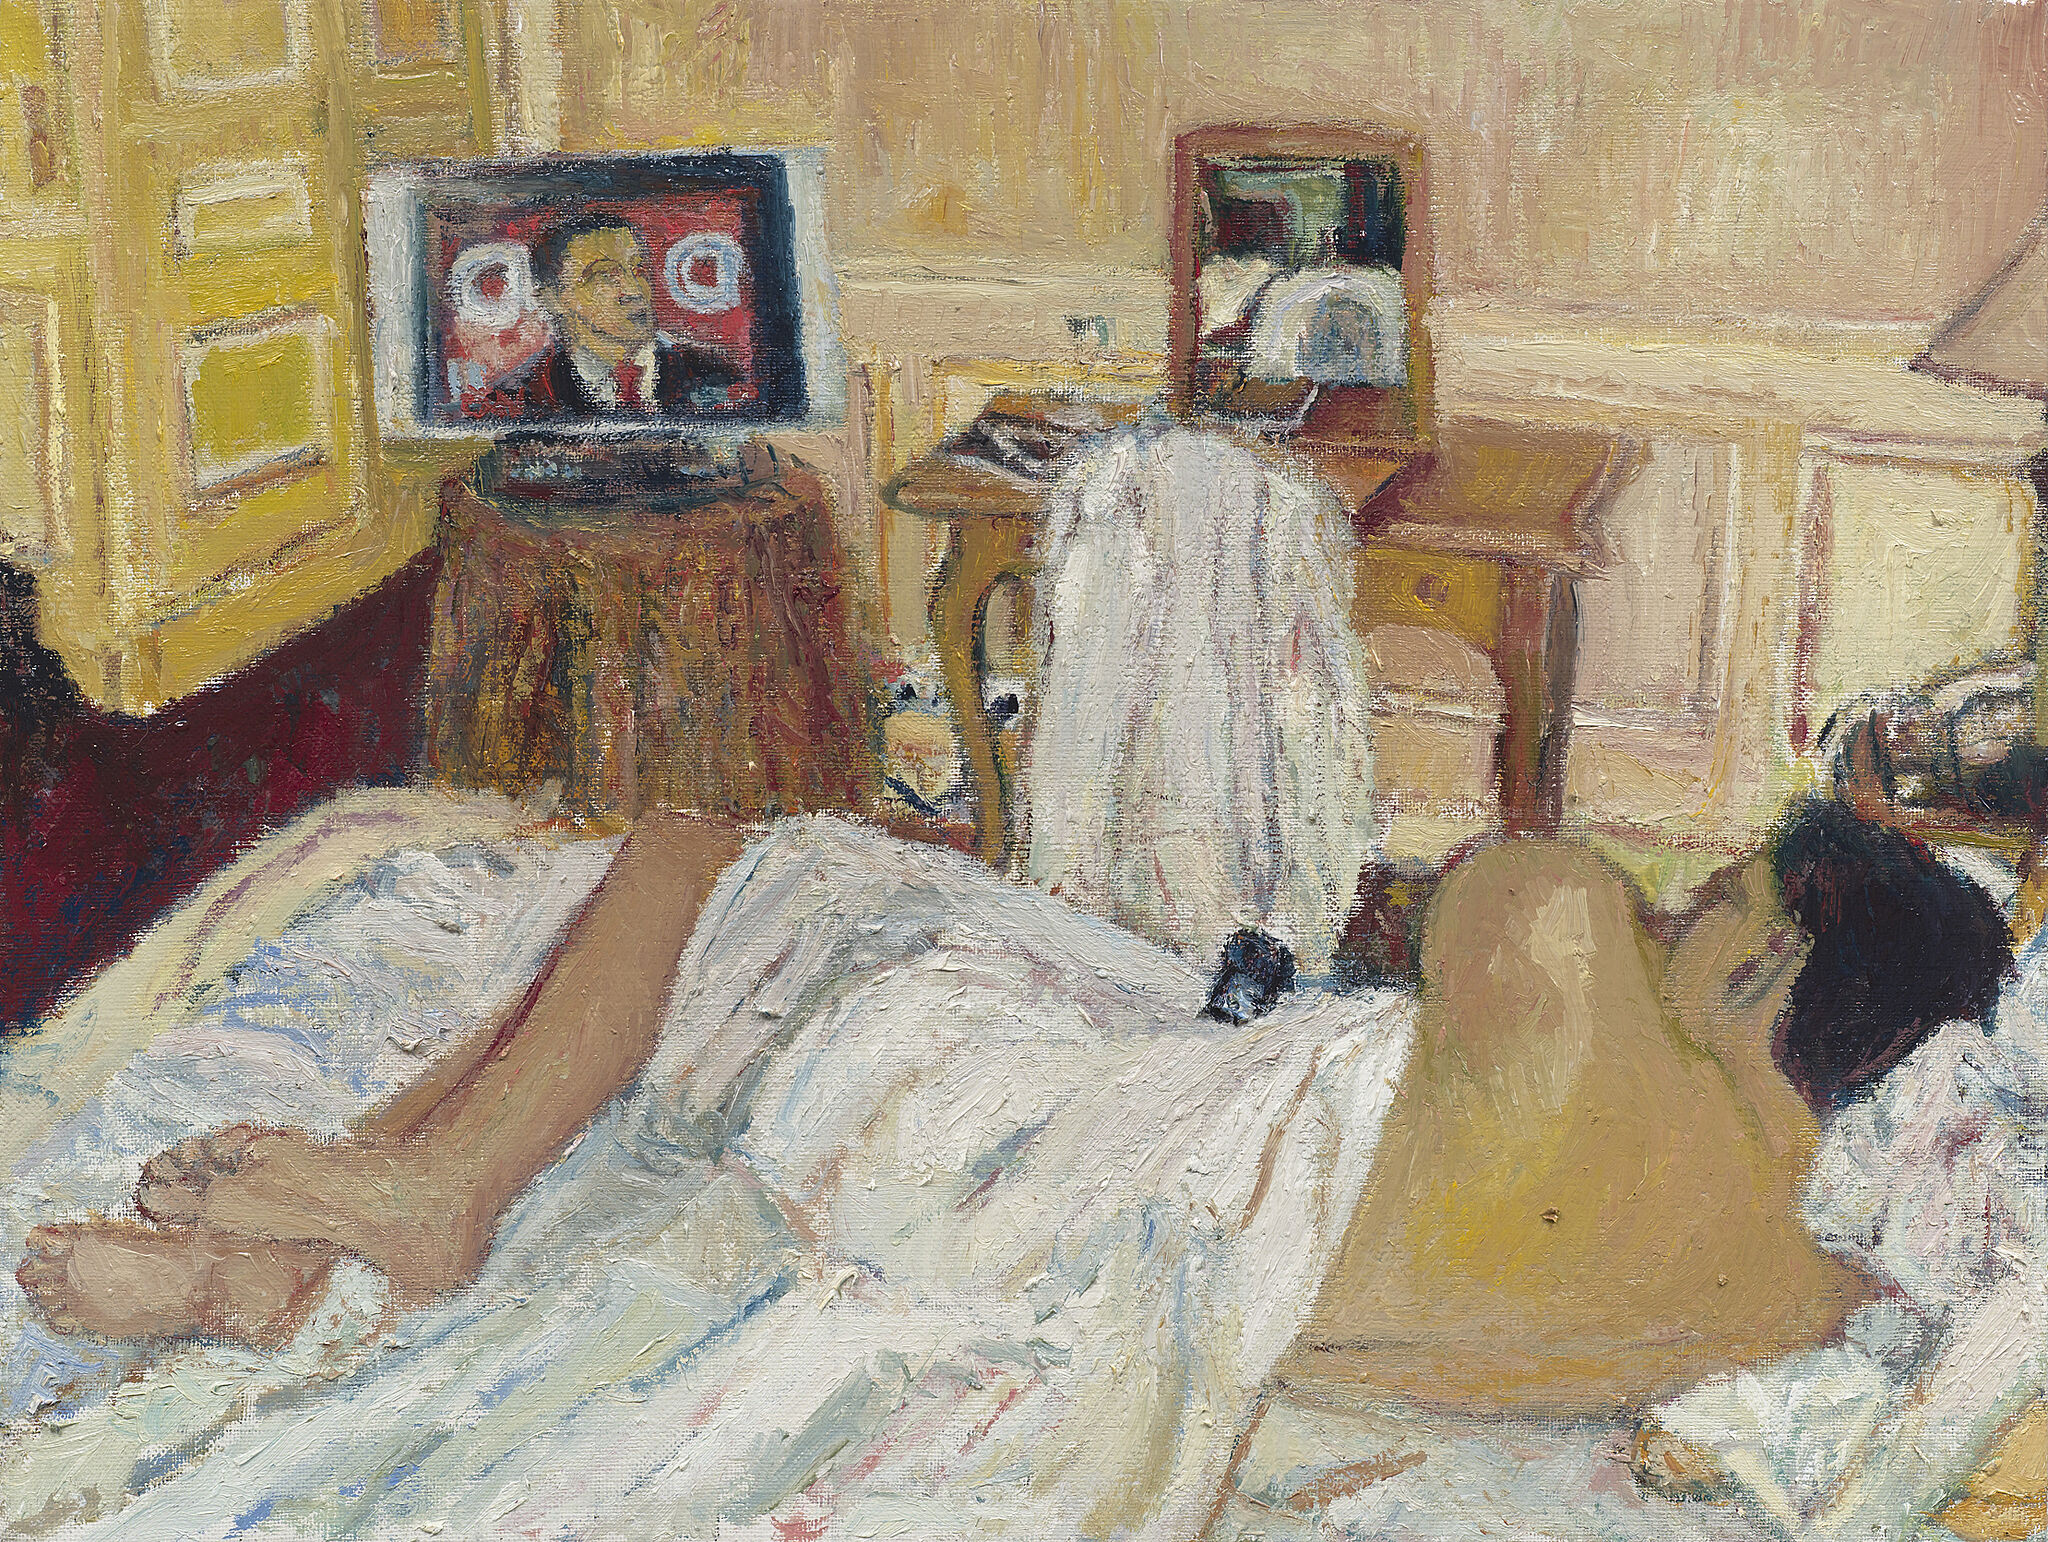 A painting of a person lying on bed and watching TV.